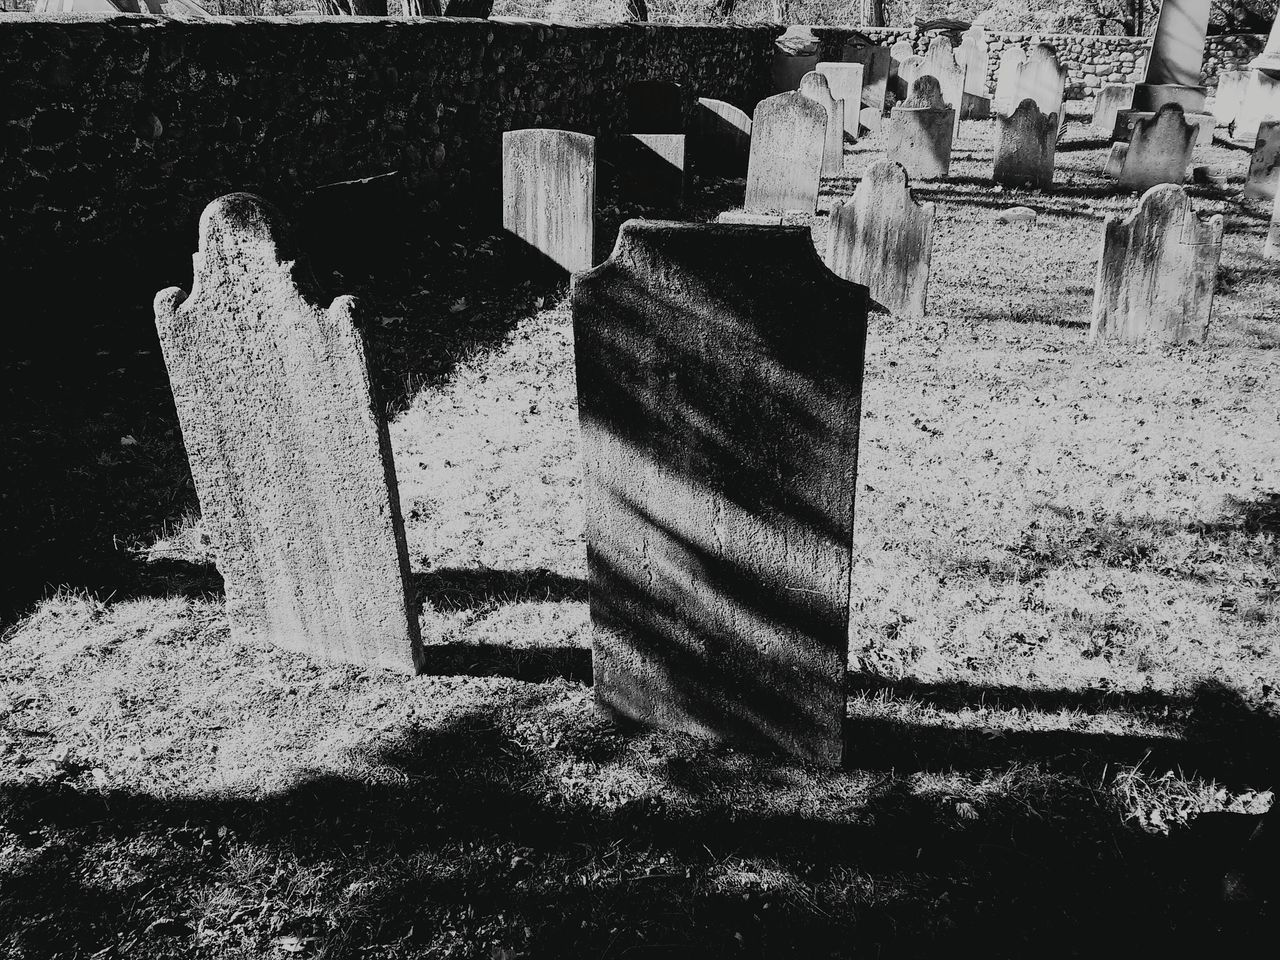 Life After Death UndergroundVoices Light And Darkness  Pattern, Texture, Shape And Form Cemetery_shots Looking To The Other Side VoicesInMyHead Historic Cemeteries Cemetery Photography